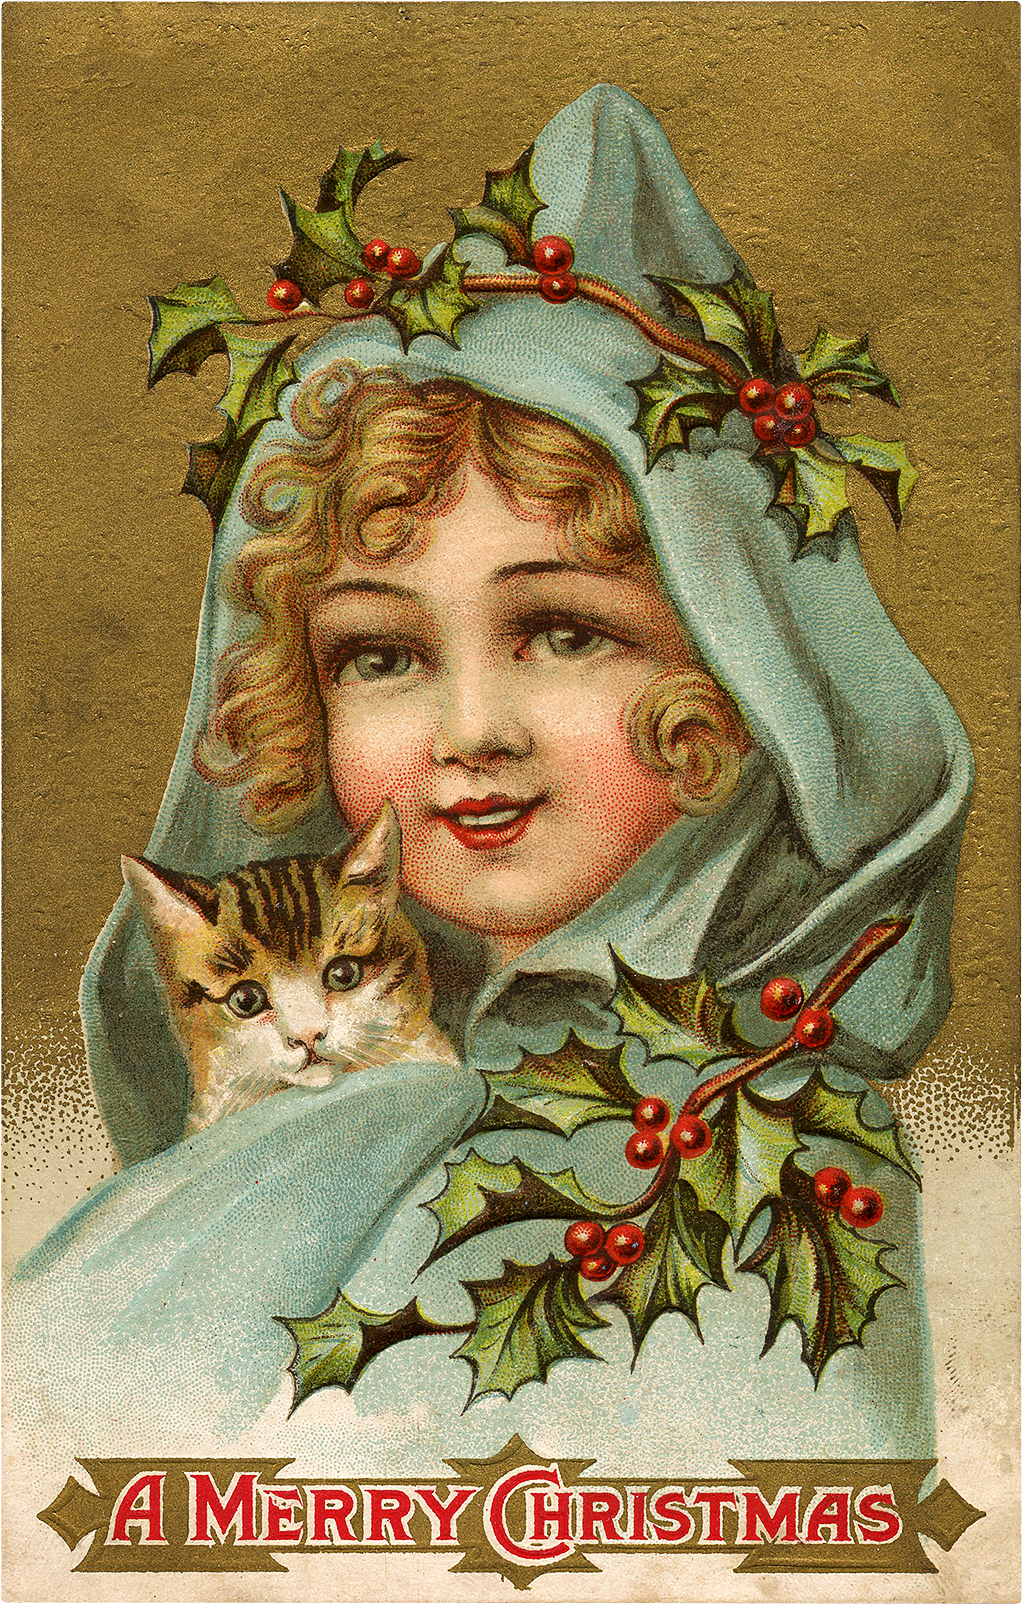 Old Cute Girl and Cat Christmas Image!